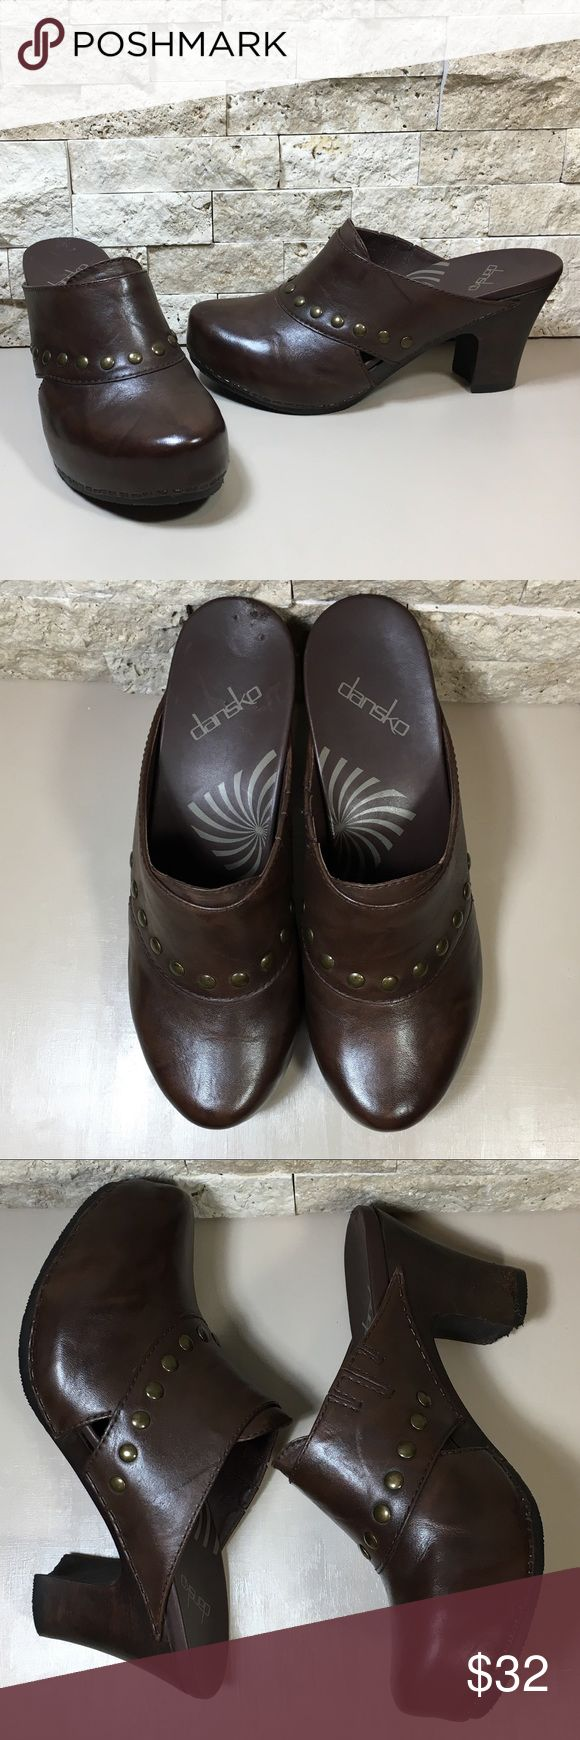 """Dansko Rudy Brown Leather Studded Mule Clog Dansko Rudy brown leather studded mules clogs. Puppy got hungry🐶, right heel has some chew marks, otherwise the rest is in excellent used condition, please see photos. Womens size Euro 38 US 7.5-8, heel height 3.25"""". f1224 Dansko Shoes Mules & Clogs"""